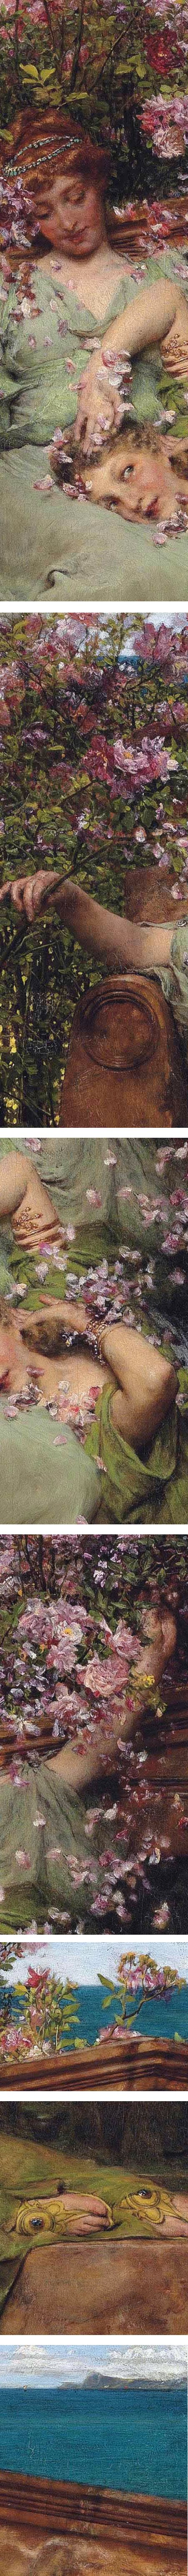 In a Rose Garden, Lawrence Alma Tadema